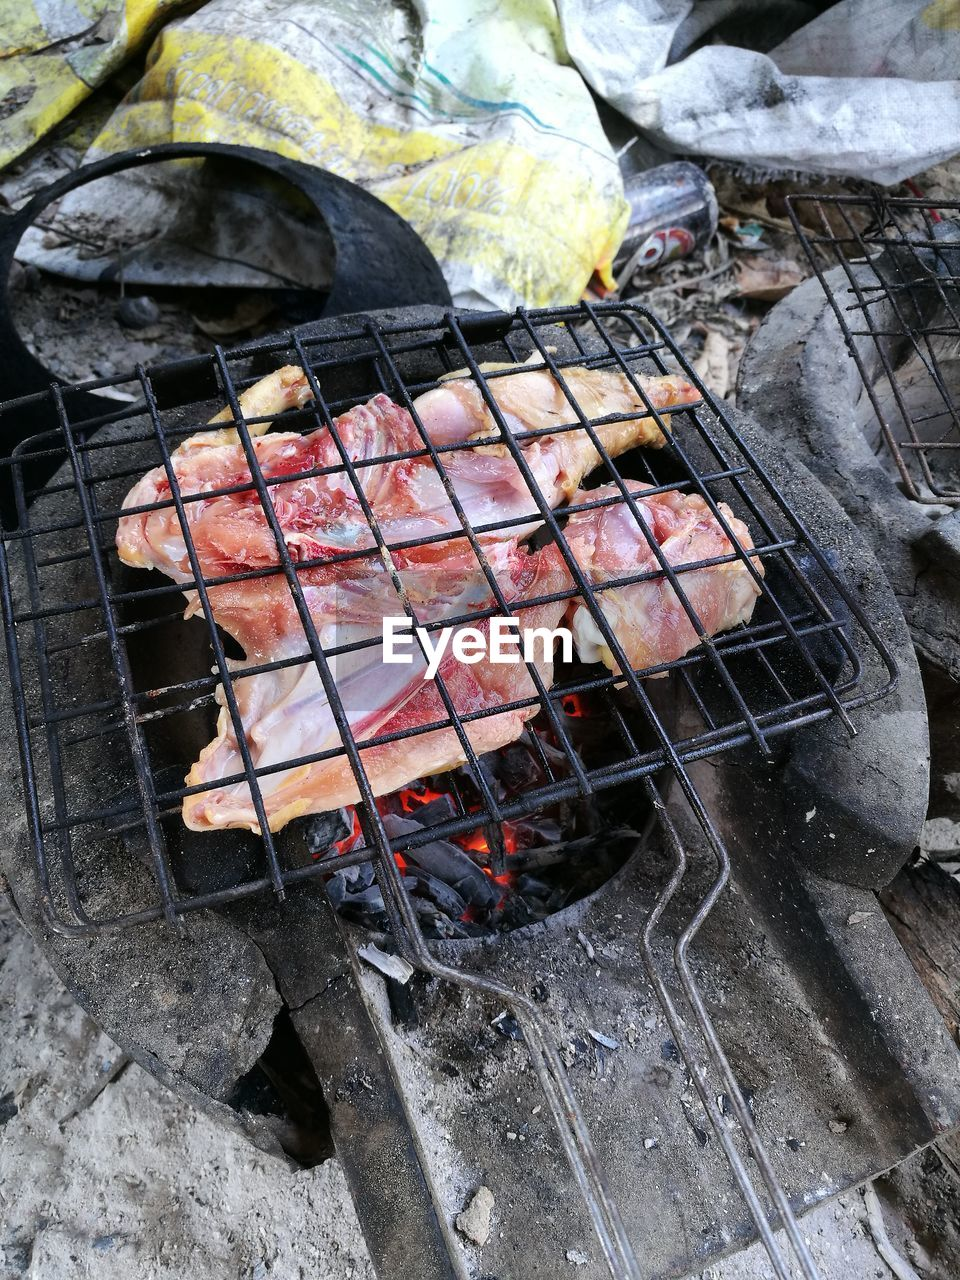 barbecue, heat - temperature, barbecue grill, meat, burning, preparation, food, grilled, food and drink, coal, fire, no people, fire - natural phenomenon, flame, preparing food, high angle view, outdoors, day, freshness, nature